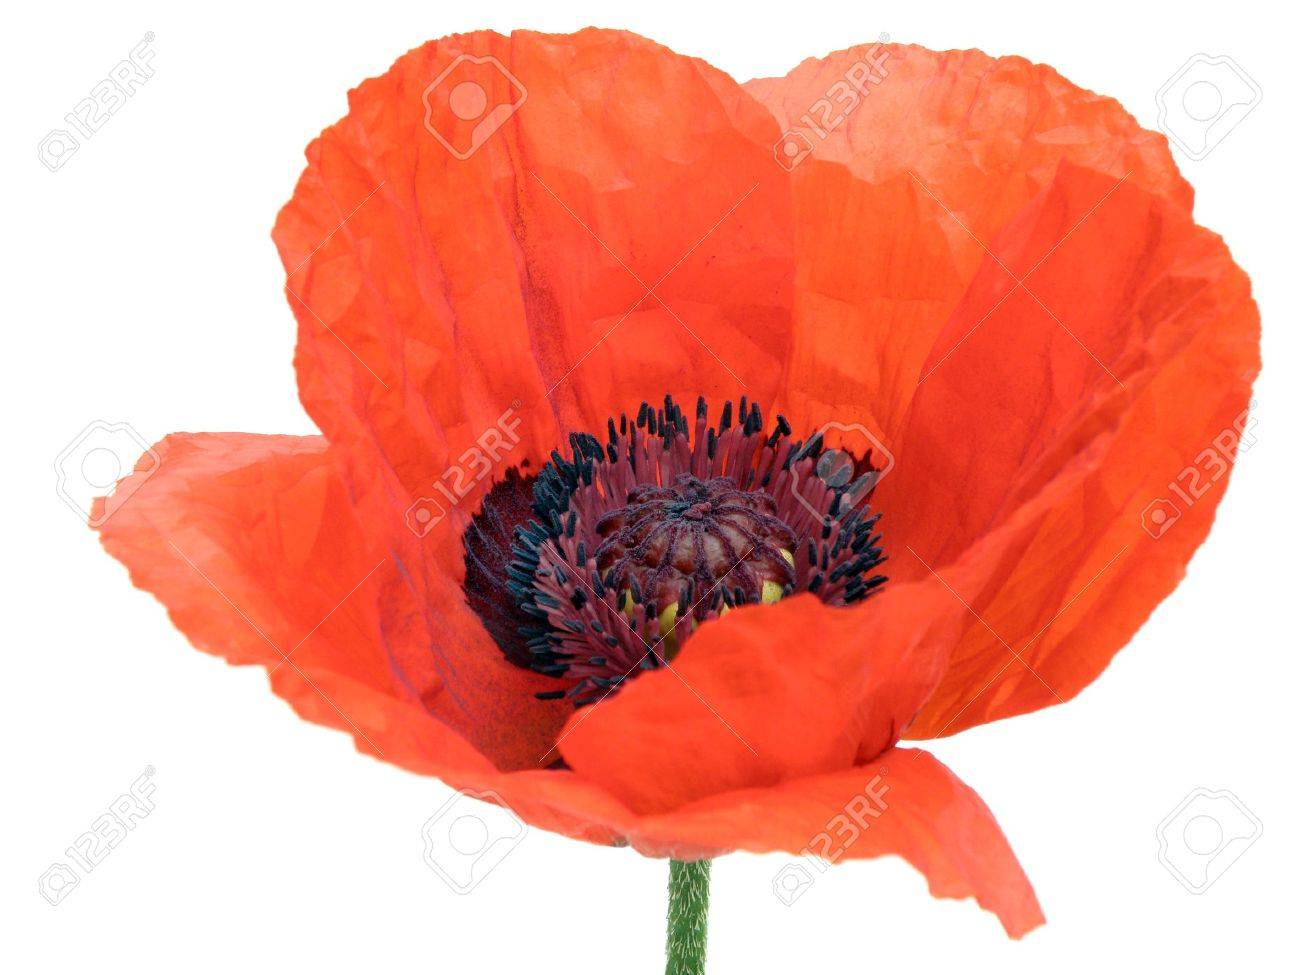 opium poppy stock photos images. royalty free opium poppy images, Beautiful flower